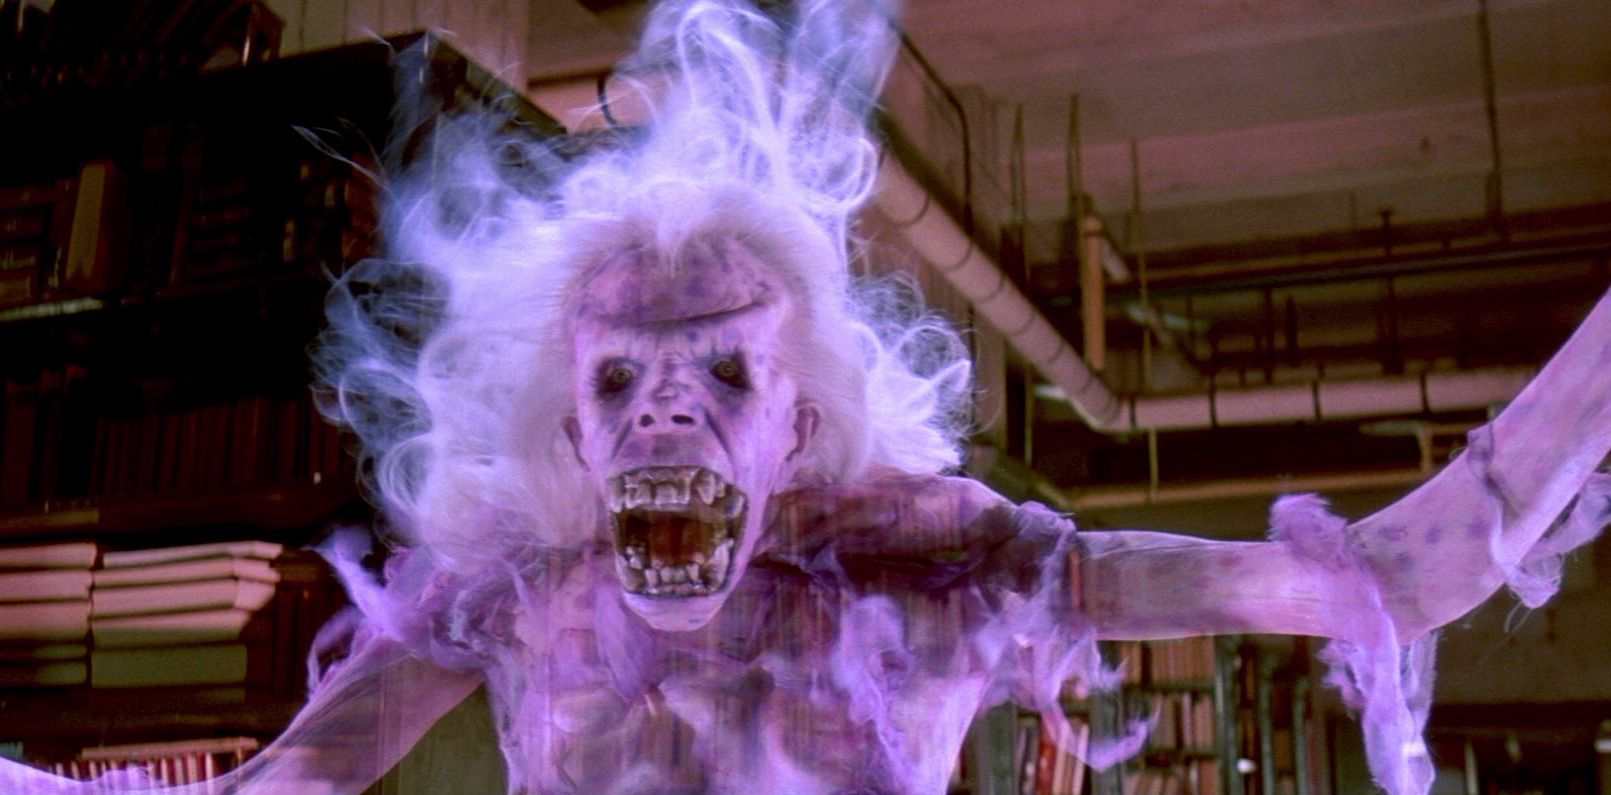 An image from Ghostbusters